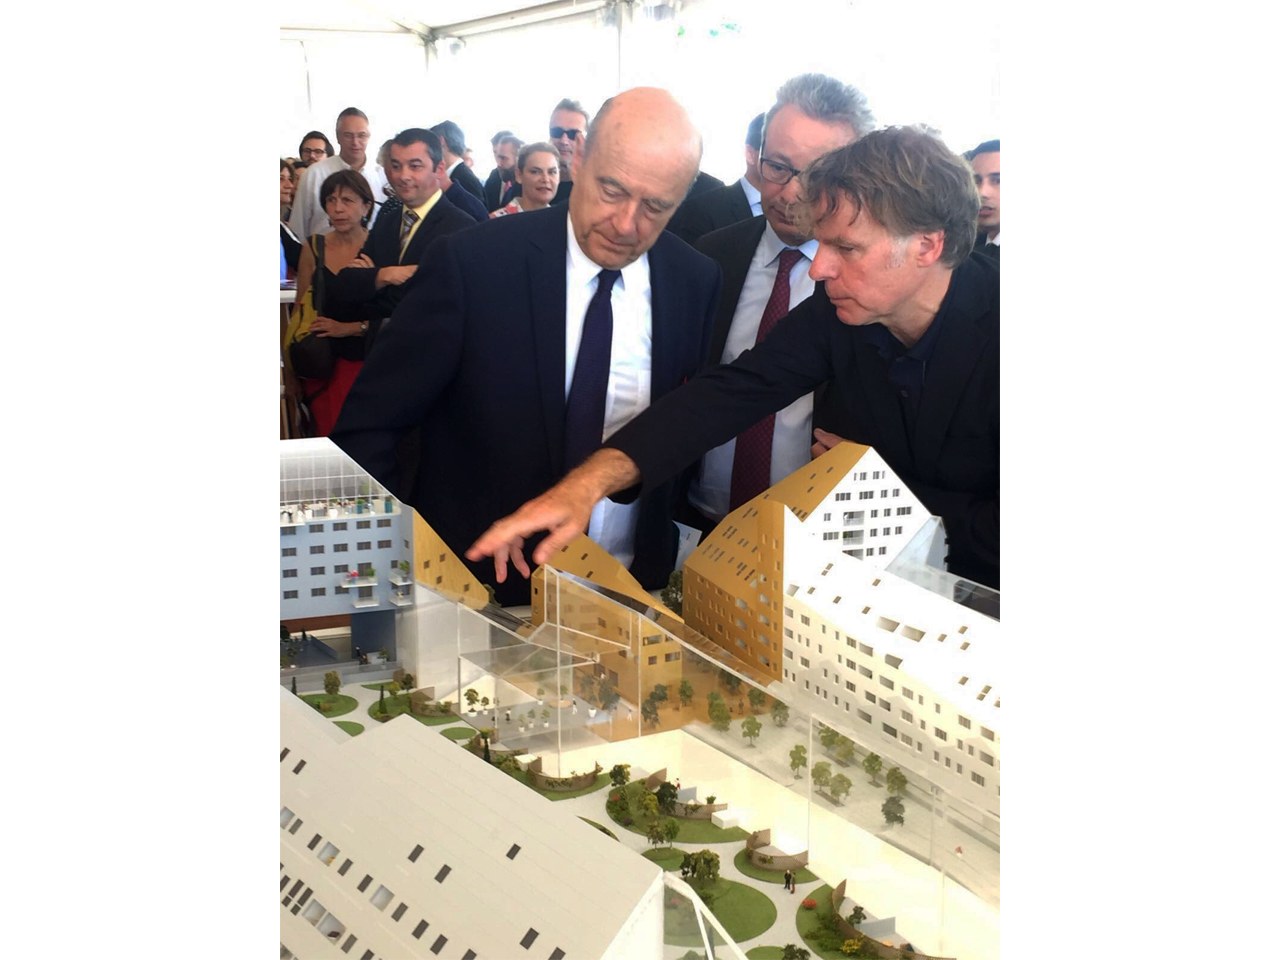 Ground  Breaking Ceremony for Ilot Queyries, Bordeaux